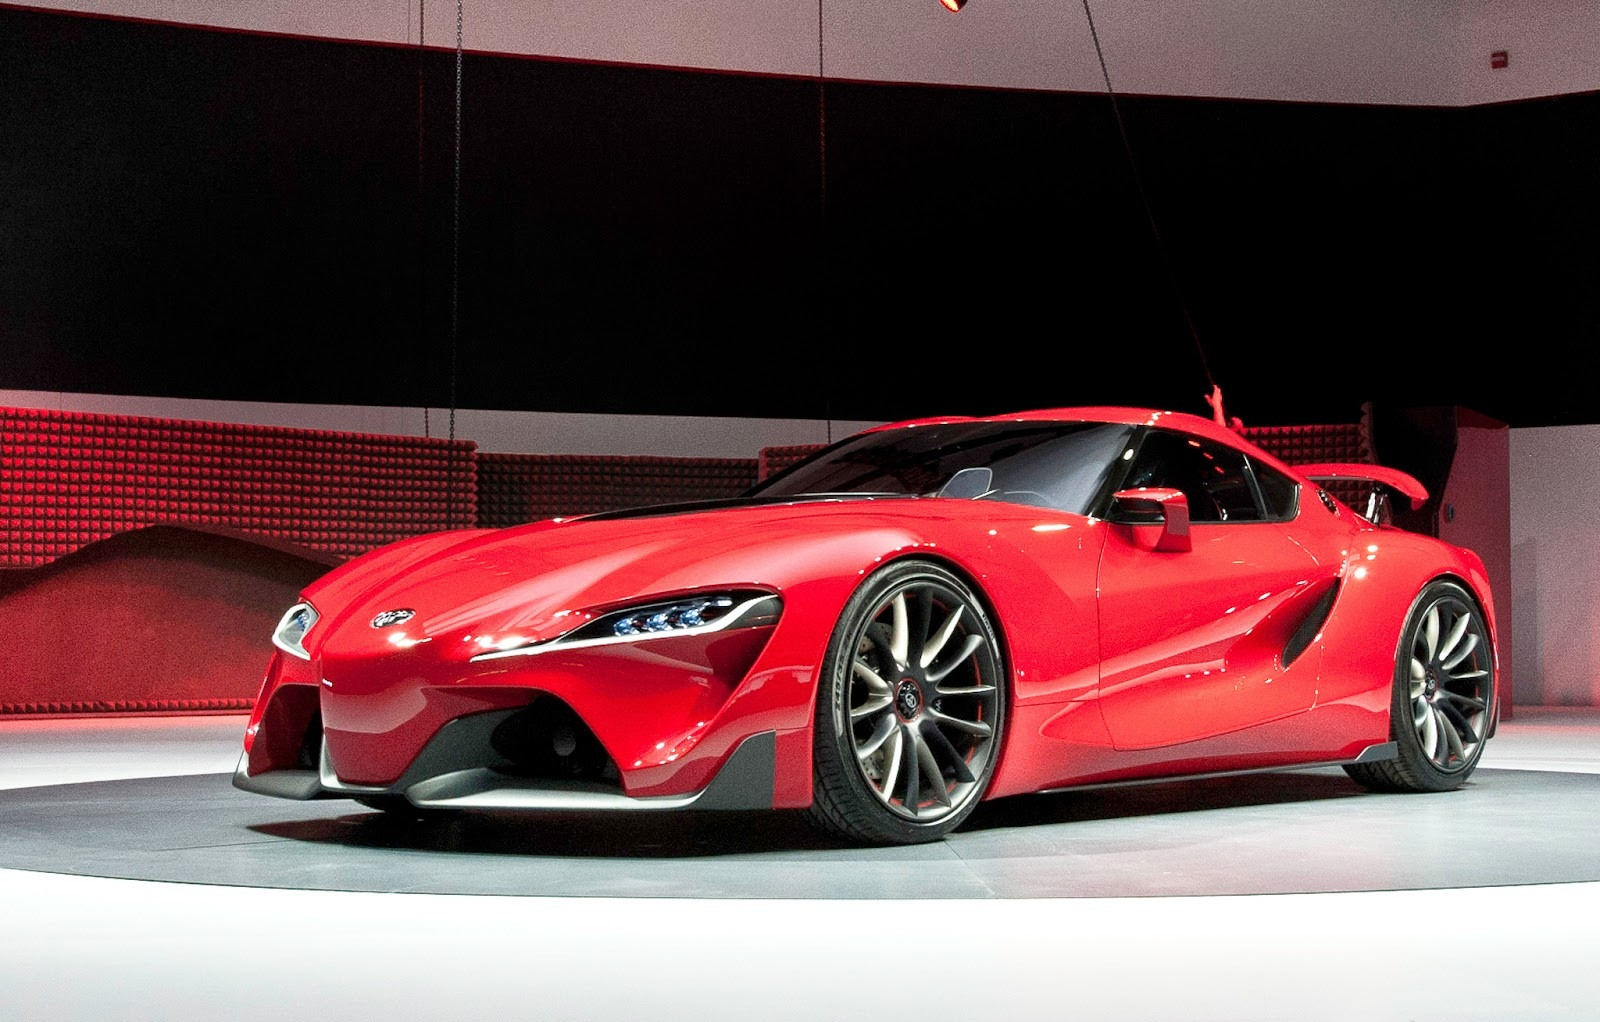 Toyota Ft1 Price >> 2016 Toyota Supra FT1 Concept - Cars Booster